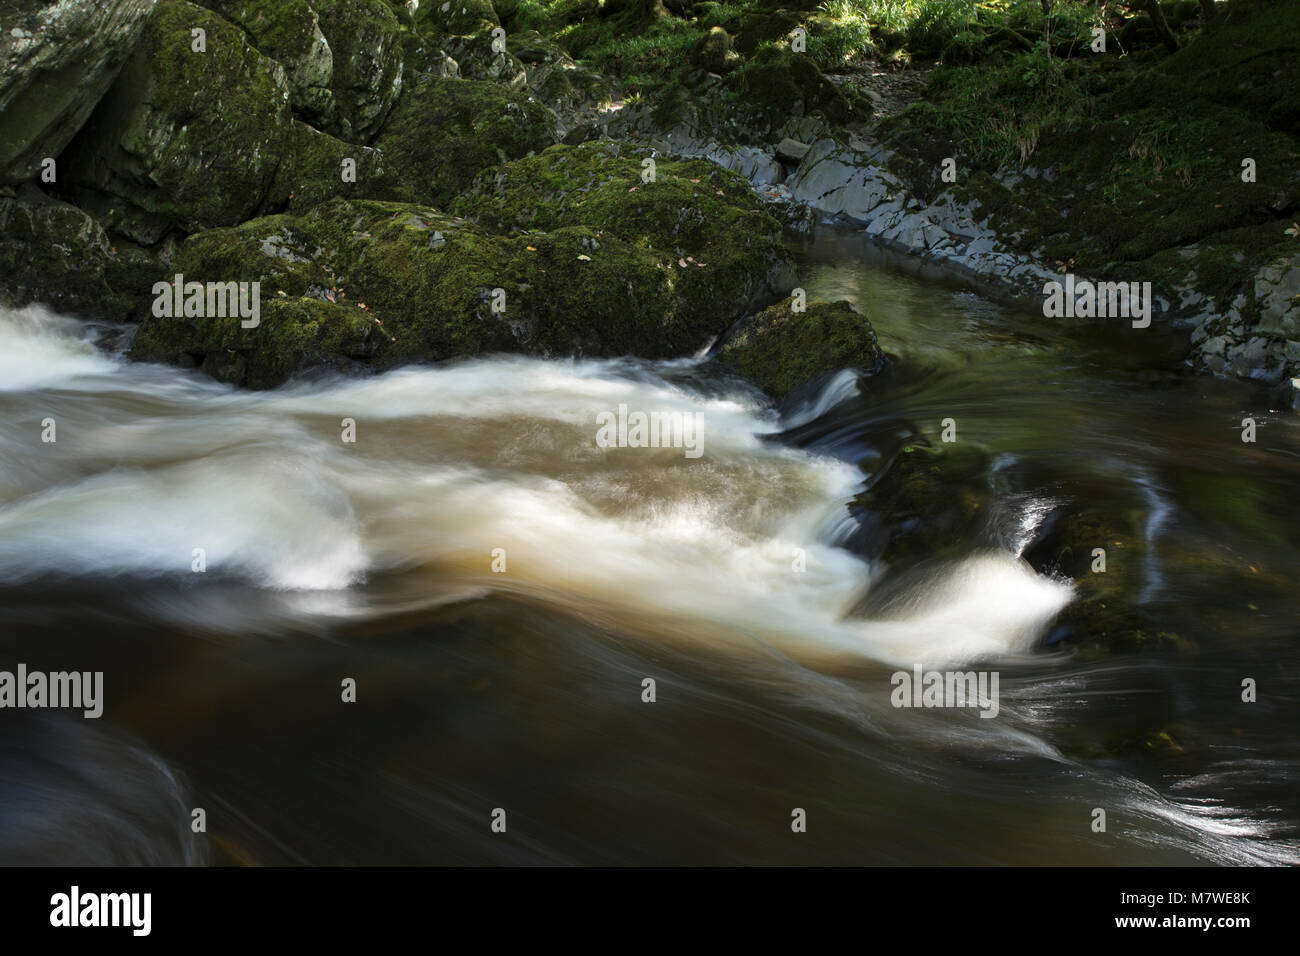 Cascade in a small river near Betws-y-coed, Snowdonia, Wales Stock Photo